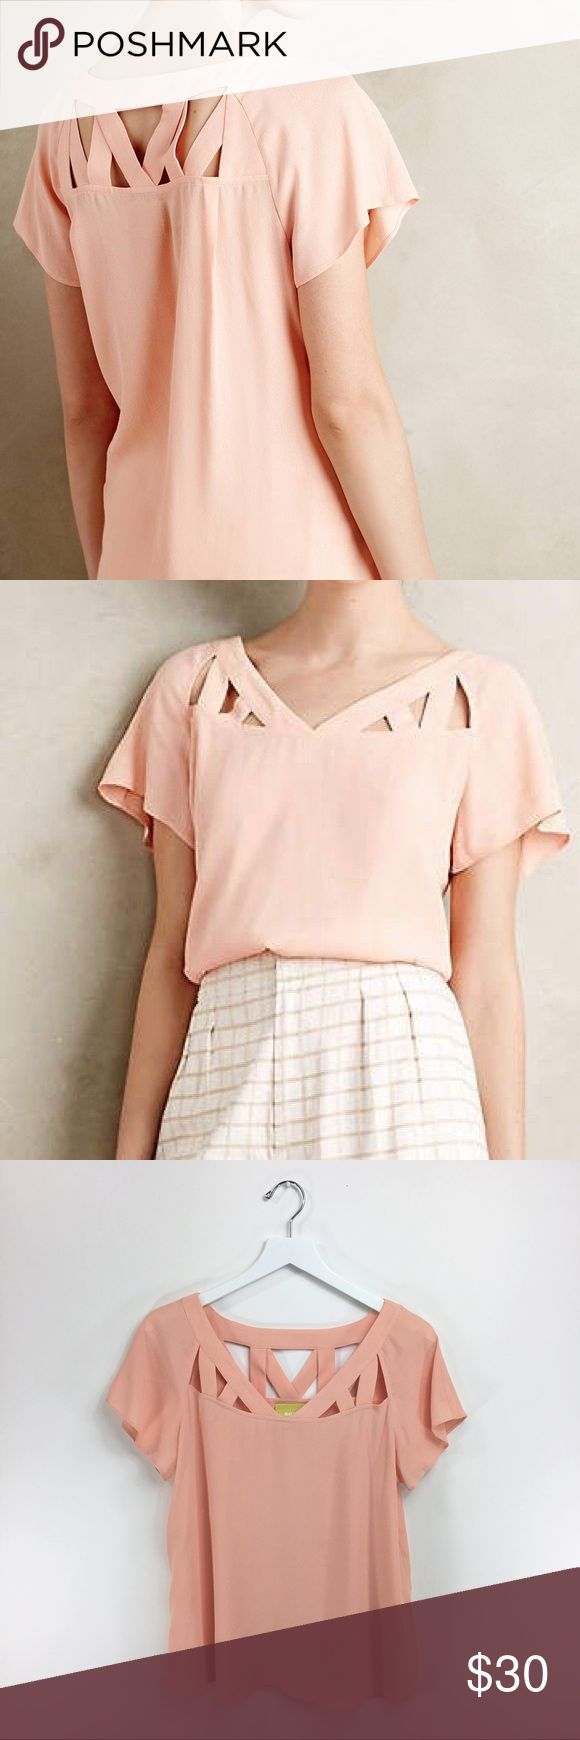 """Maeve Anthropologie Tri Cut Peach Blouse Such a gorgeous blouse! Beautiful tucked into a skirt or paired with skinny jeans. Size: 4 *Gently used without flaws Measurements: B- 19"""" A- 9"""" L- 24"""" Anthropologie Tops Blouses"""